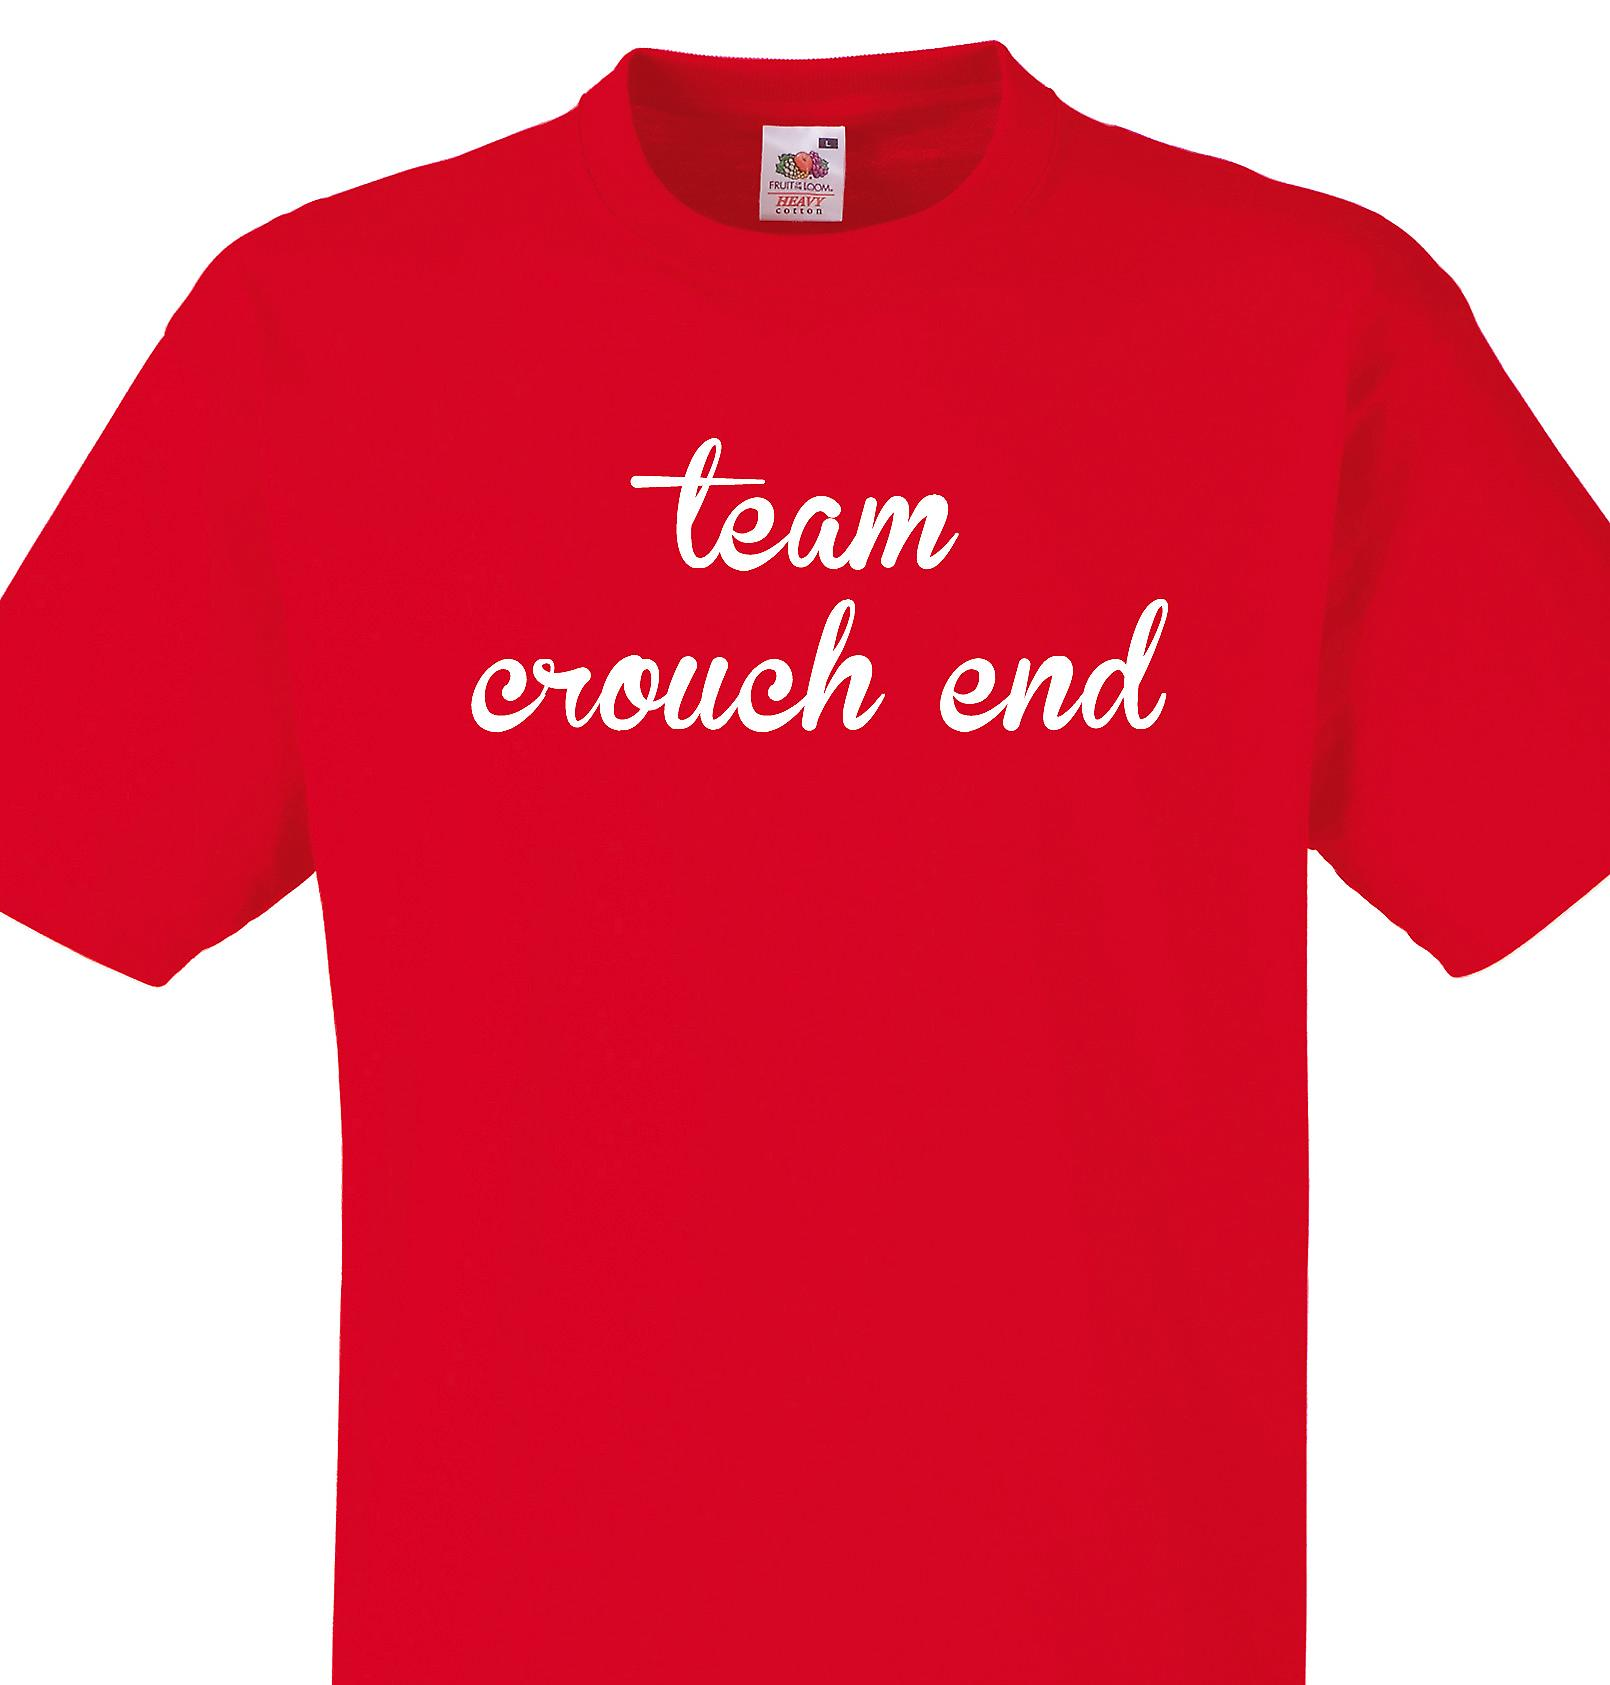 Team Crouch end Red T shirt